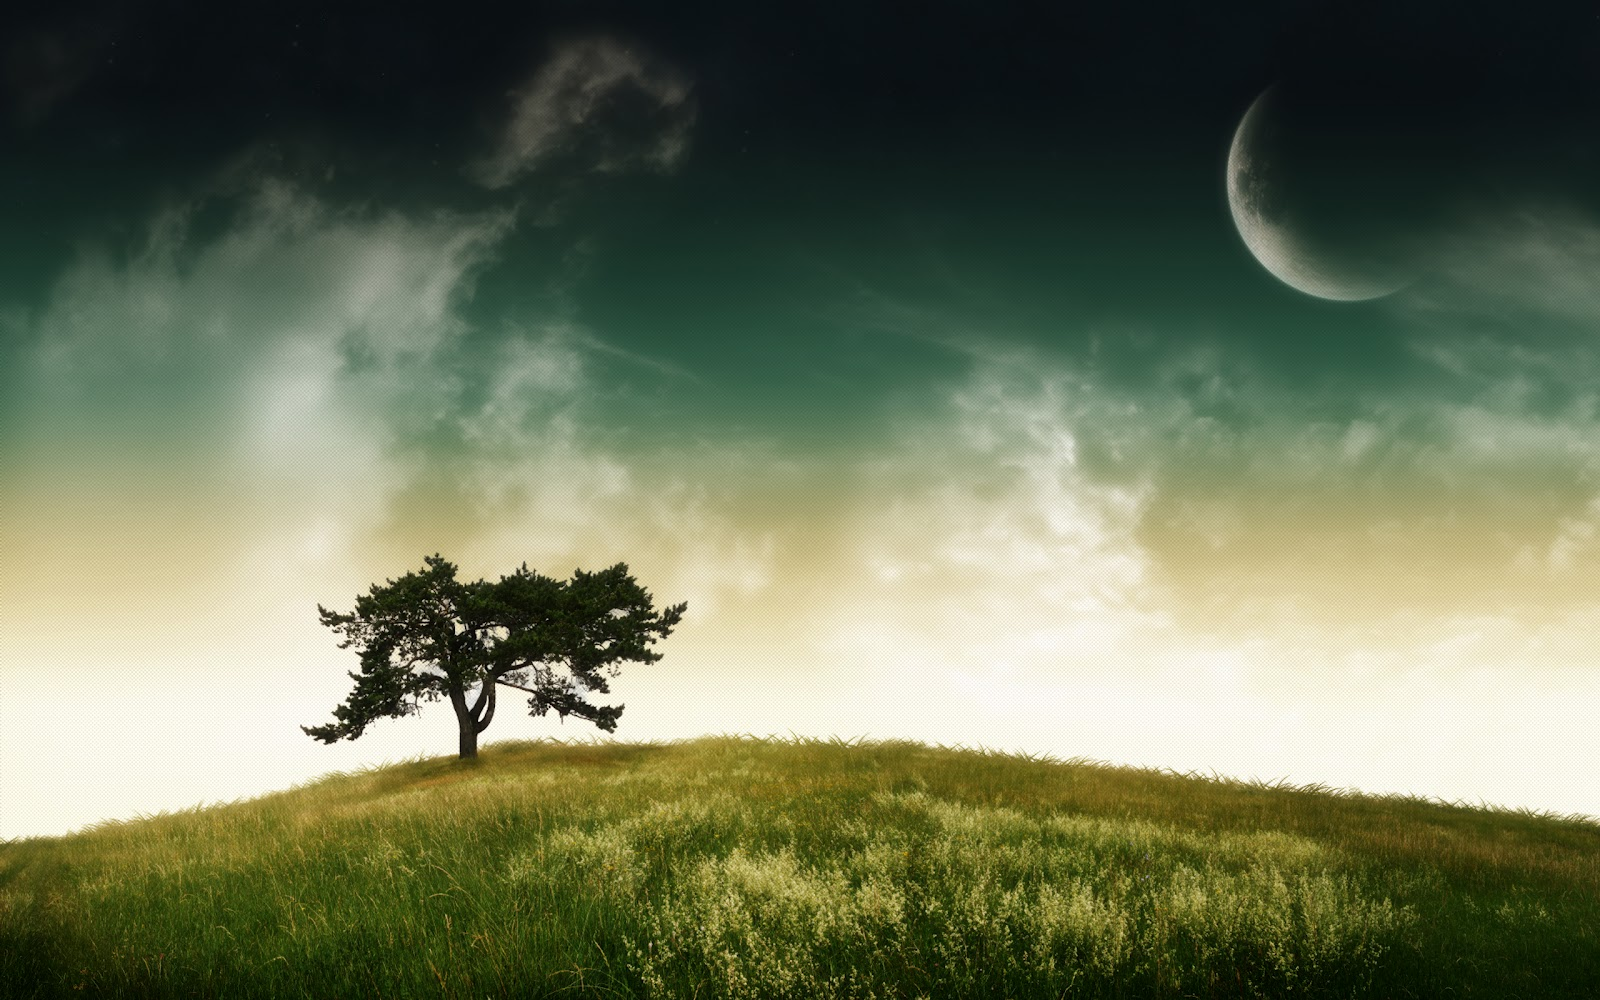 http://4.bp.blogspot.com/-P6dR2p7OWVg/T_7sYRxuNgI/AAAAAAAAAEM/B9EdPz0nicg/s1600/Tree-and-Moon-great-desktop-background-wallpaper.jpg